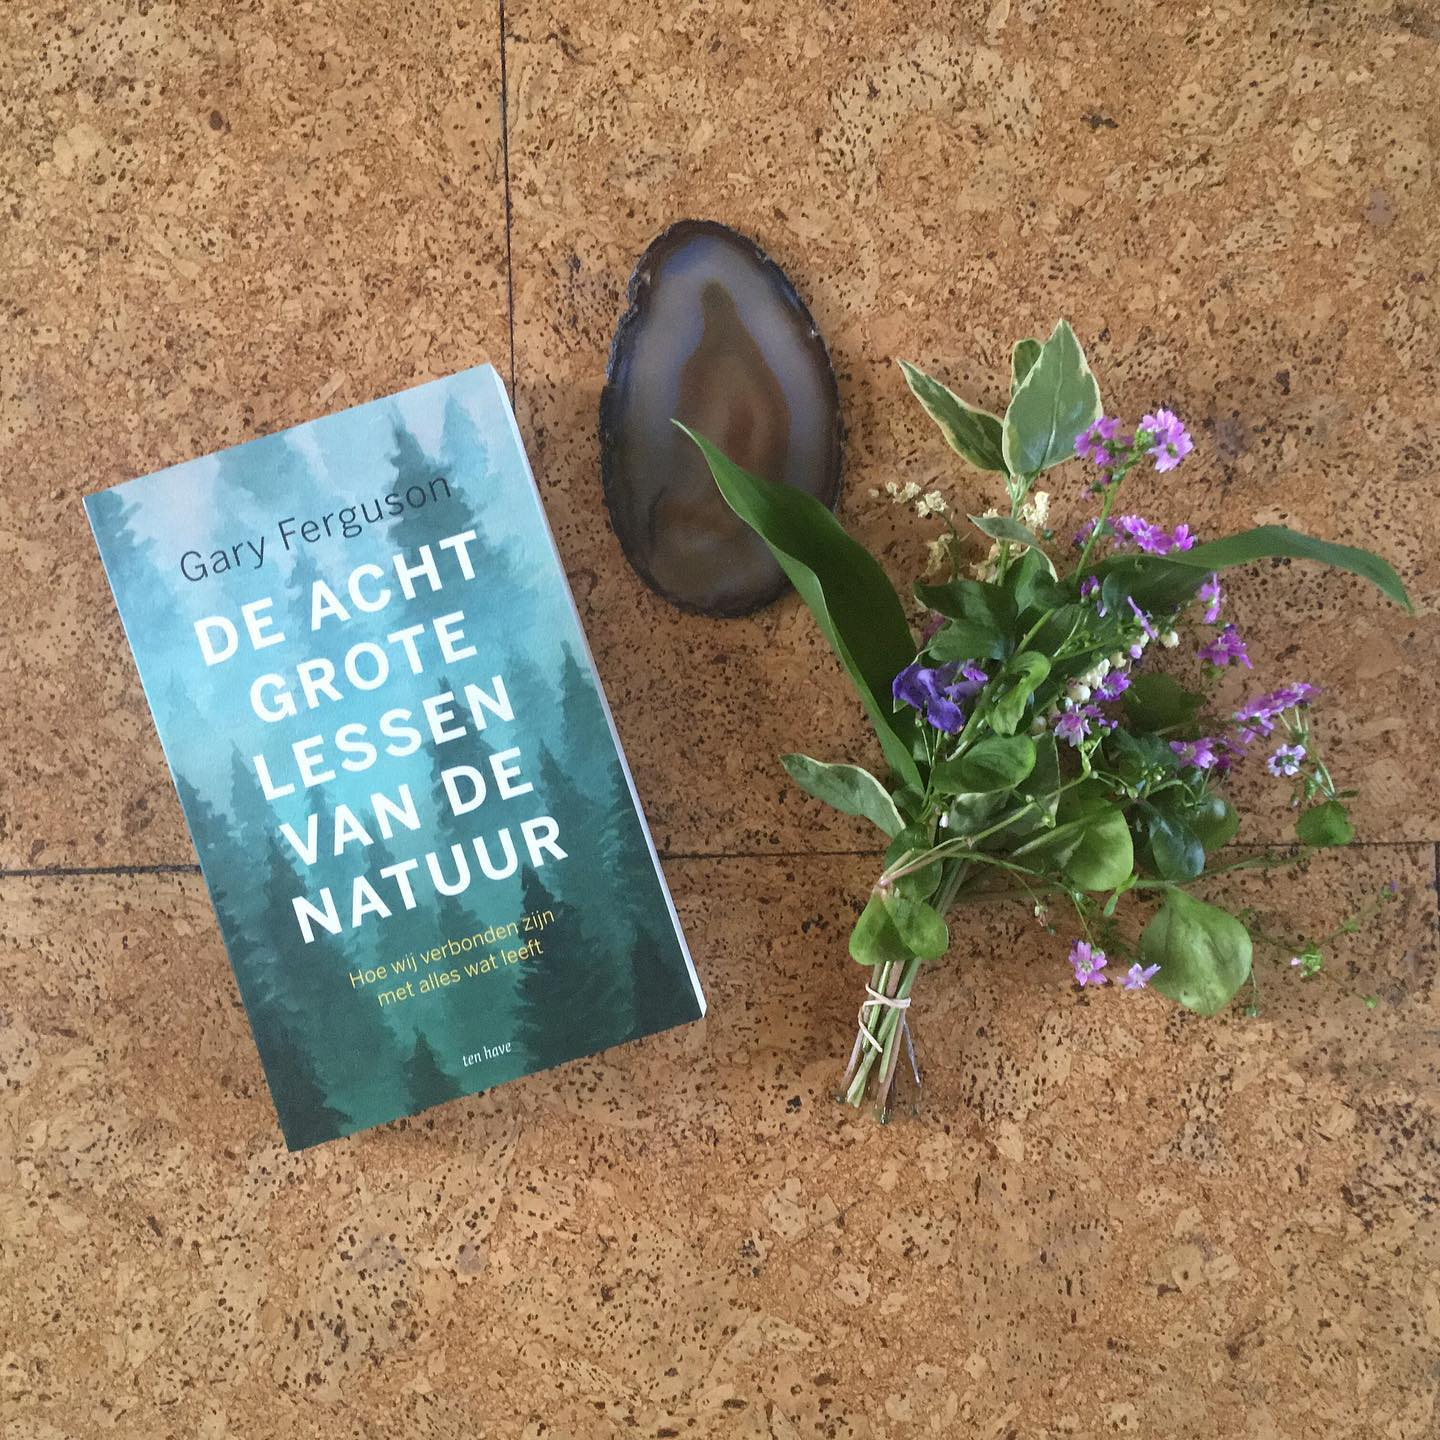 Yay! My book came in: The Eight Master Lessons of Nature; What Nature Teaches Us About Living Well by Gary Ferguson, can't wait to start! And always nice to visit Yvon and Stefan at @kbw.alice.in.wonderland my favorite bookstore in town!.#buylocal #supportyourlocals #kinderboekwinkelaliceinwonderland #thehague #denhaag #garyferguson #deachtgrotelessenvandenatuur